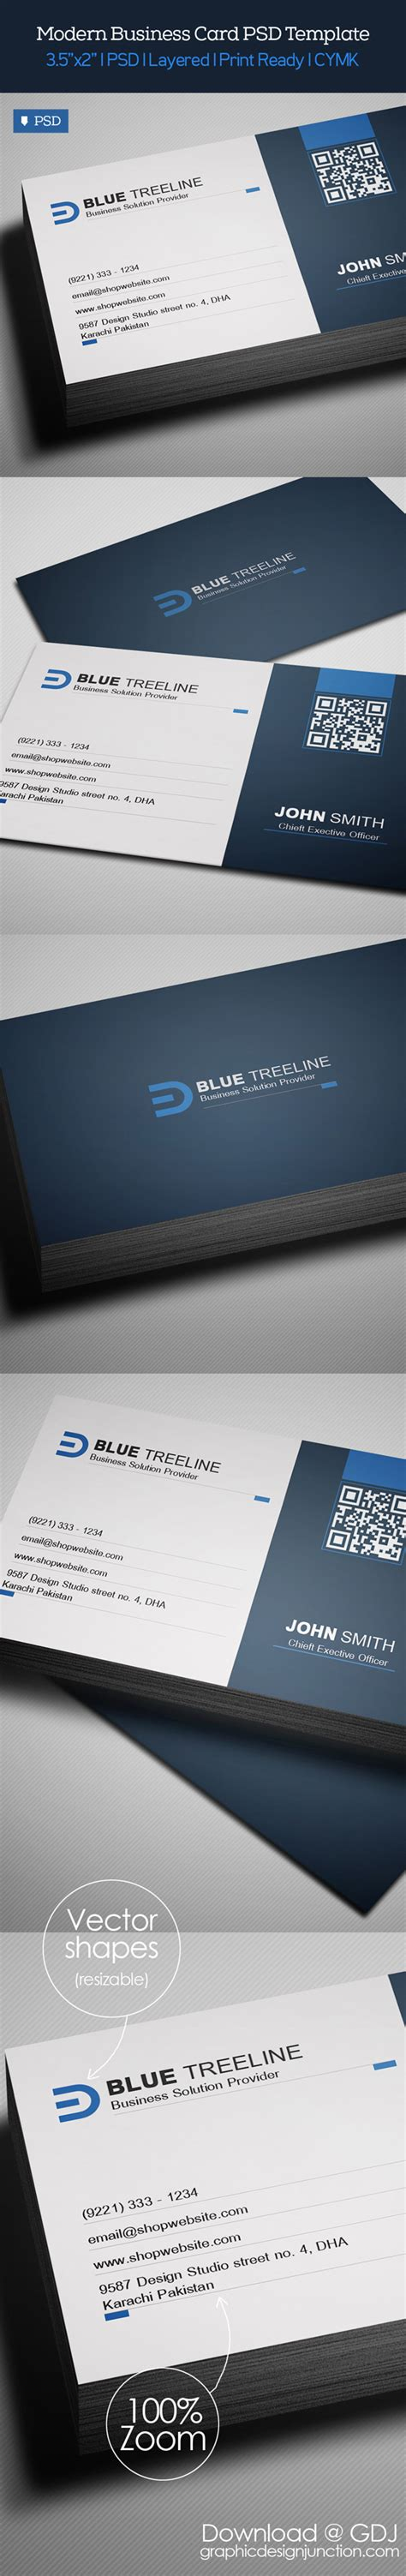 freebies highest quality business card templates psd